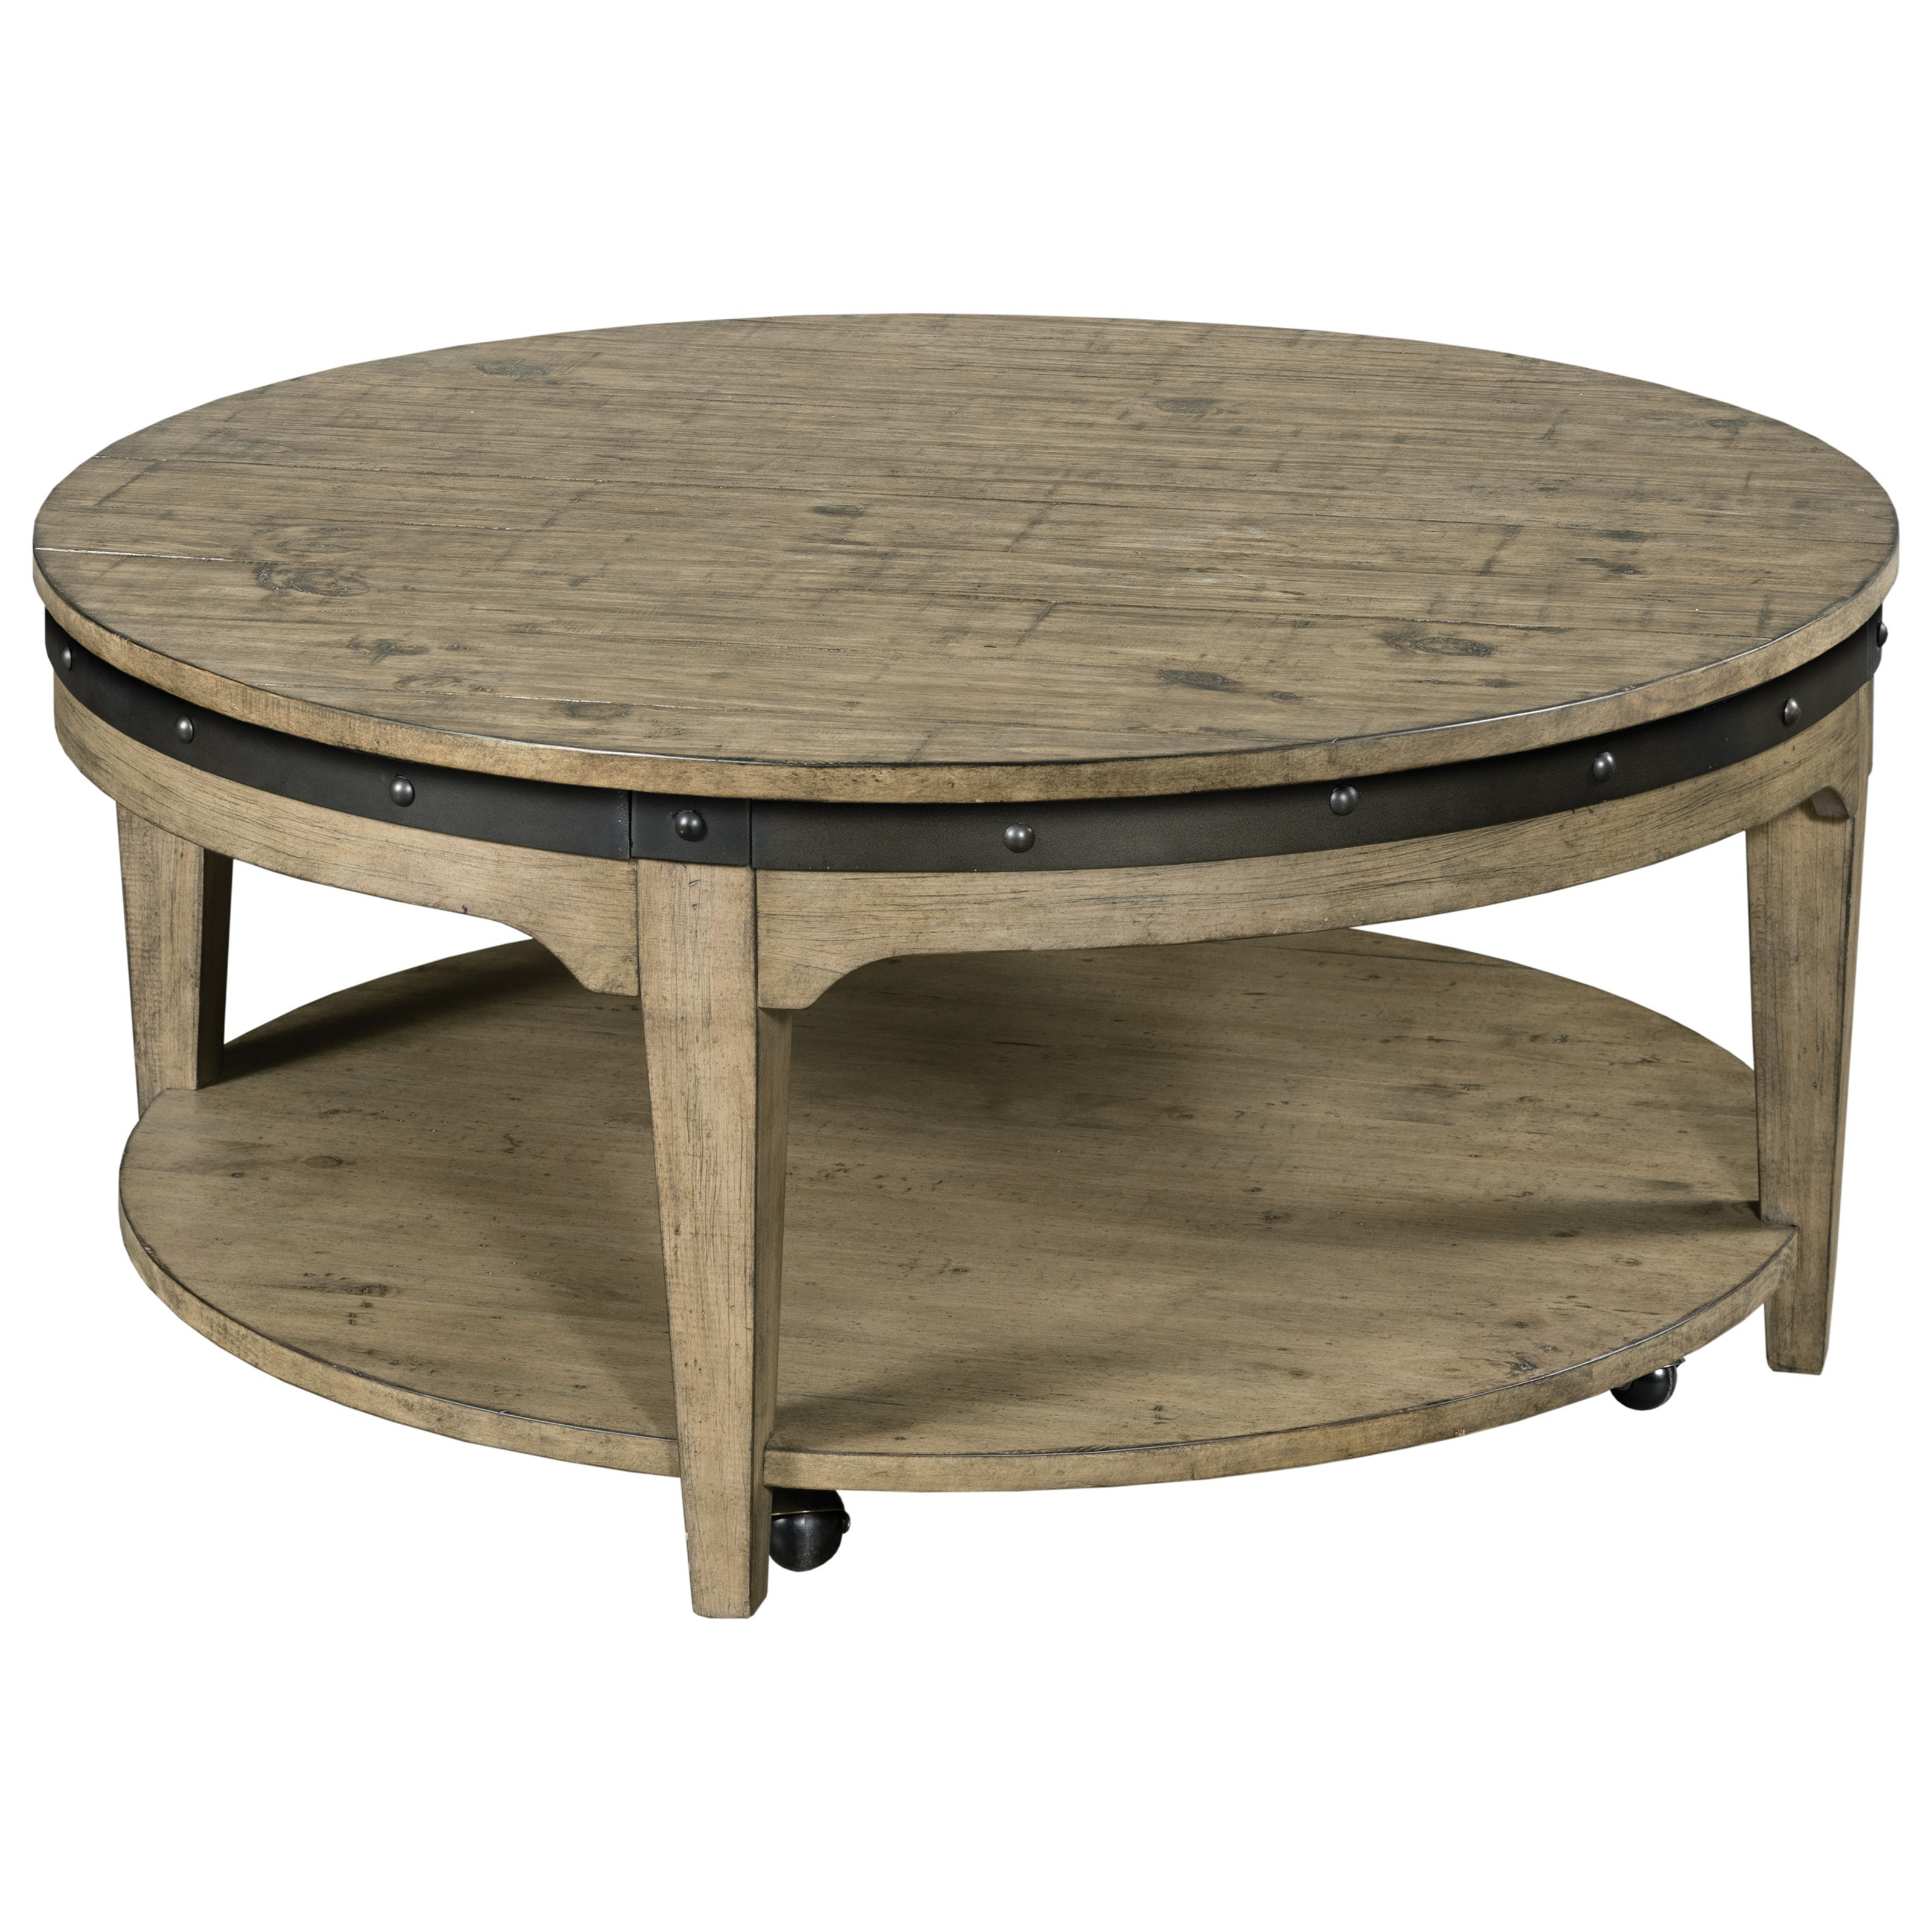 Plank Road Artisans Round Cocktail Table                by Kincaid Furniture at Johnny Janosik